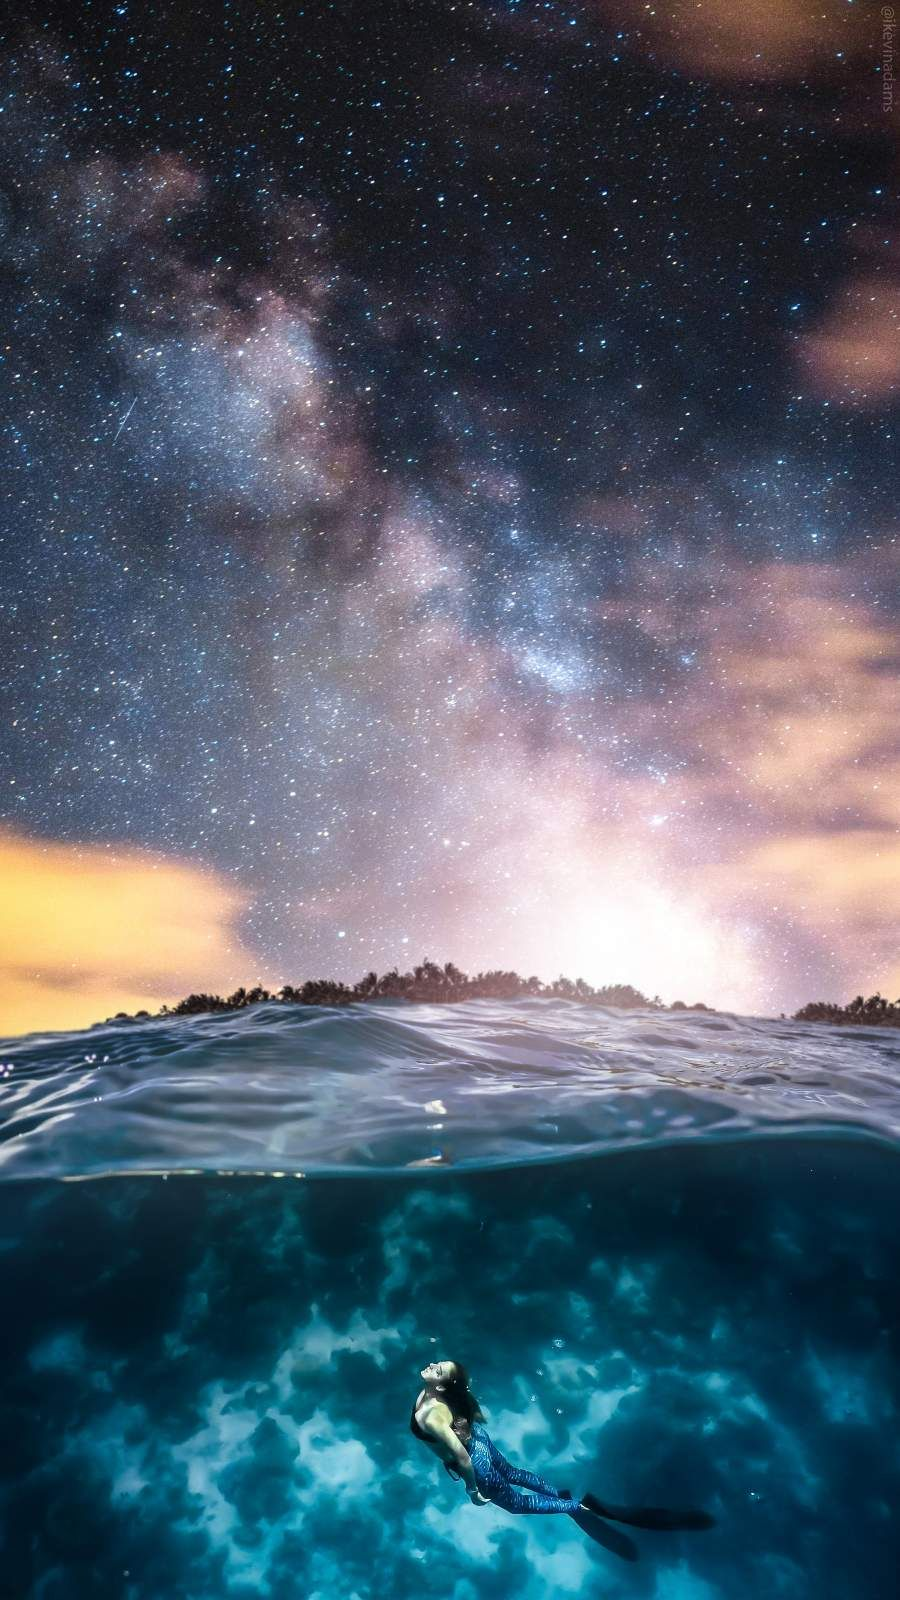 List of Cool Background for iPhone 8 / 8 Plus 2019